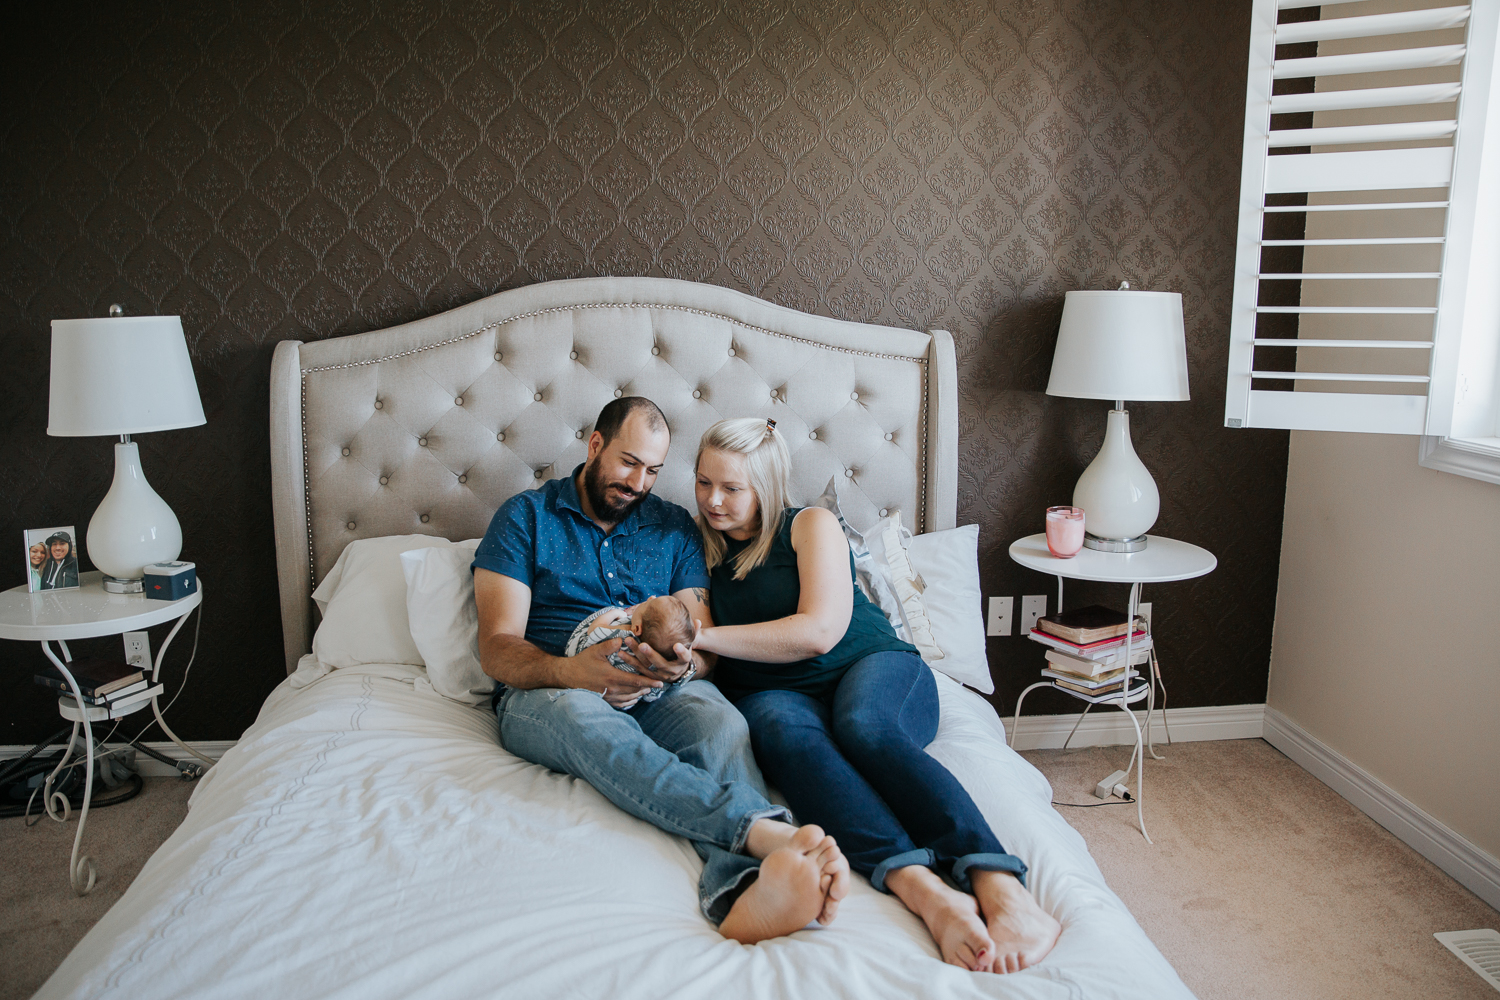 new family of 3 sitting on bed, parents smiling at 2 week old baby boy in dad's arms - Barrie Lifestyle Photos